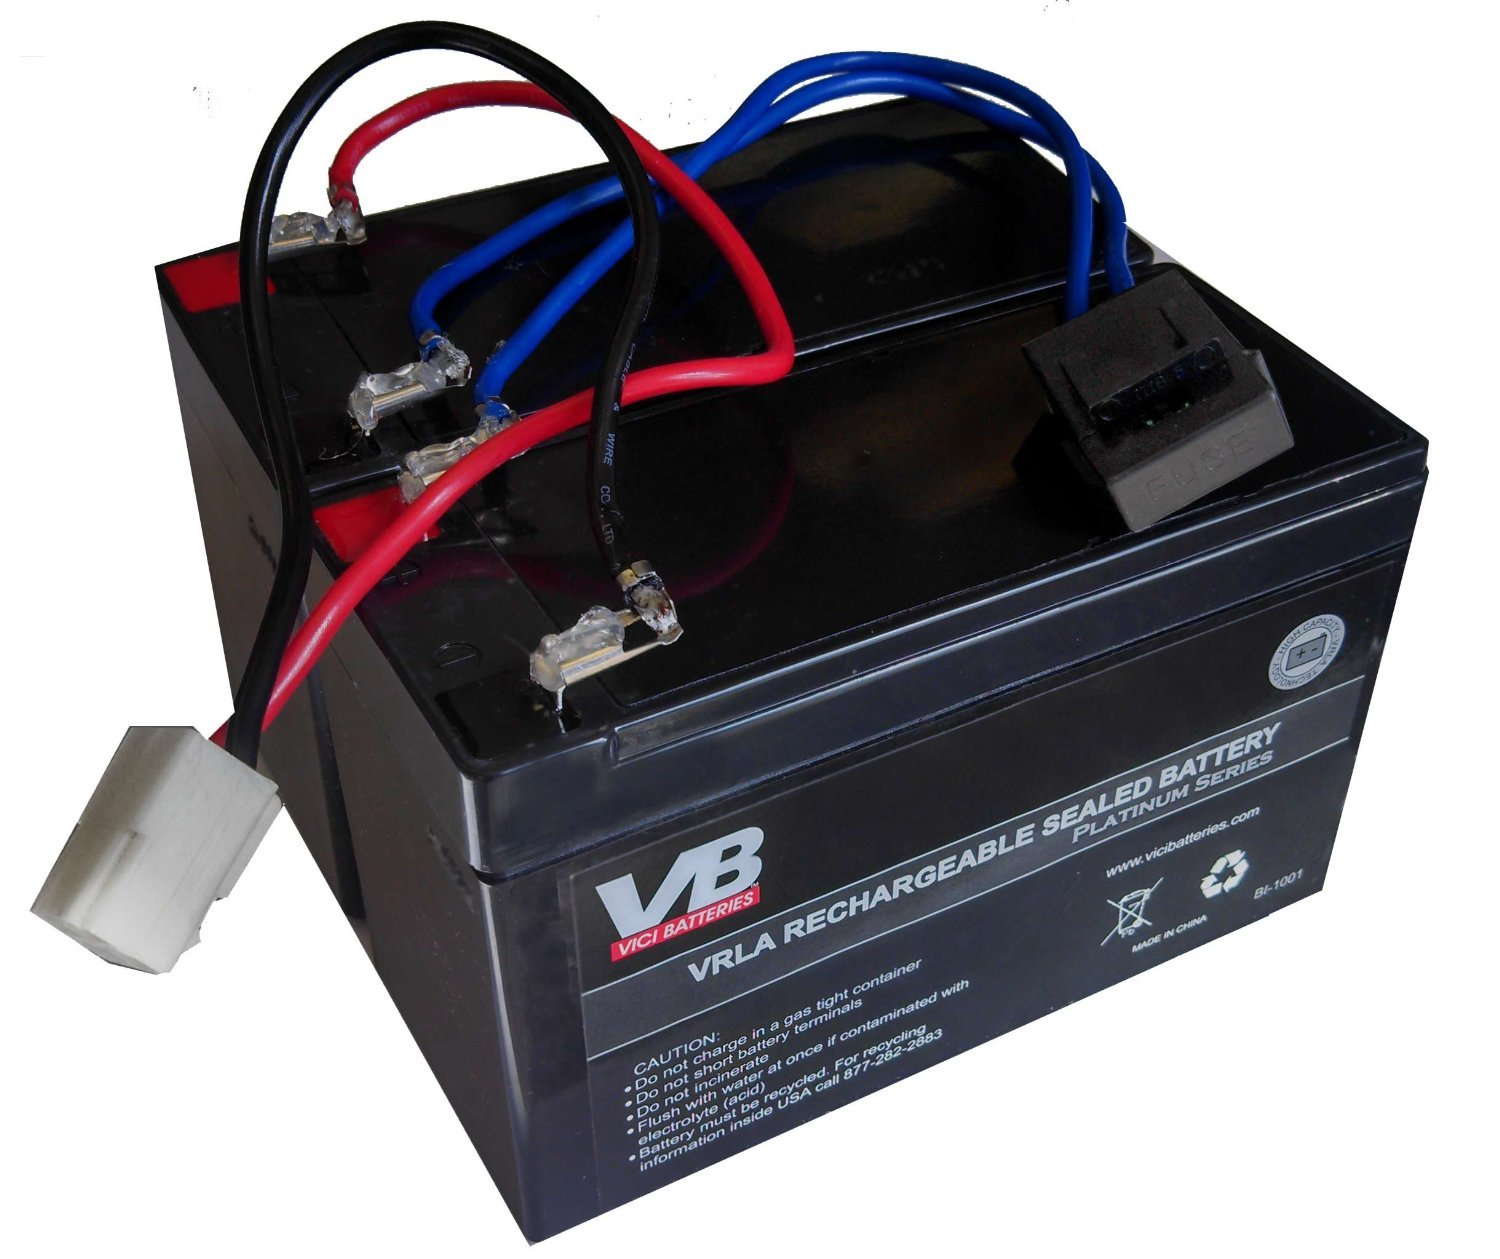 MX400 9 ah High Capacity Razor Battery Replacement - Includes Wiring Harness (9 ah HIGH capacity - 24 volt system) by Vici Battery